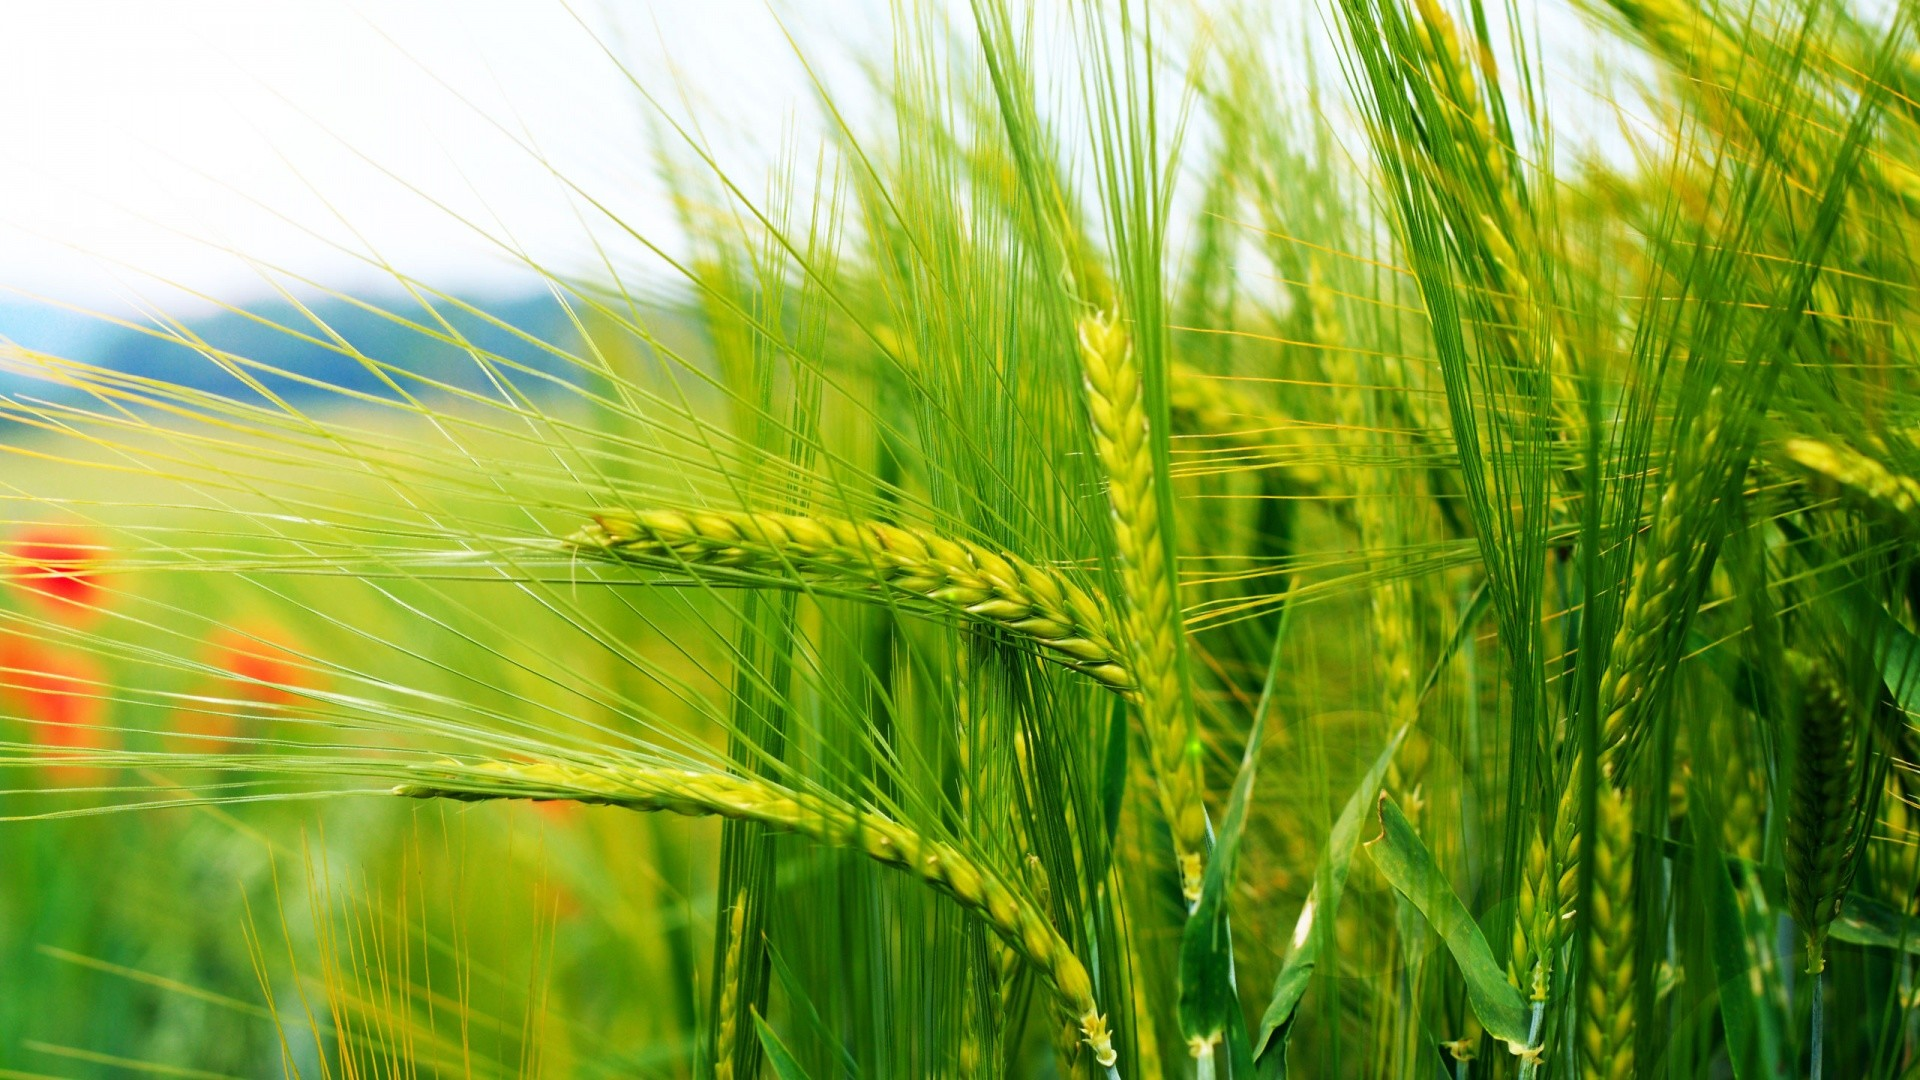 RESEARCH WHEAT